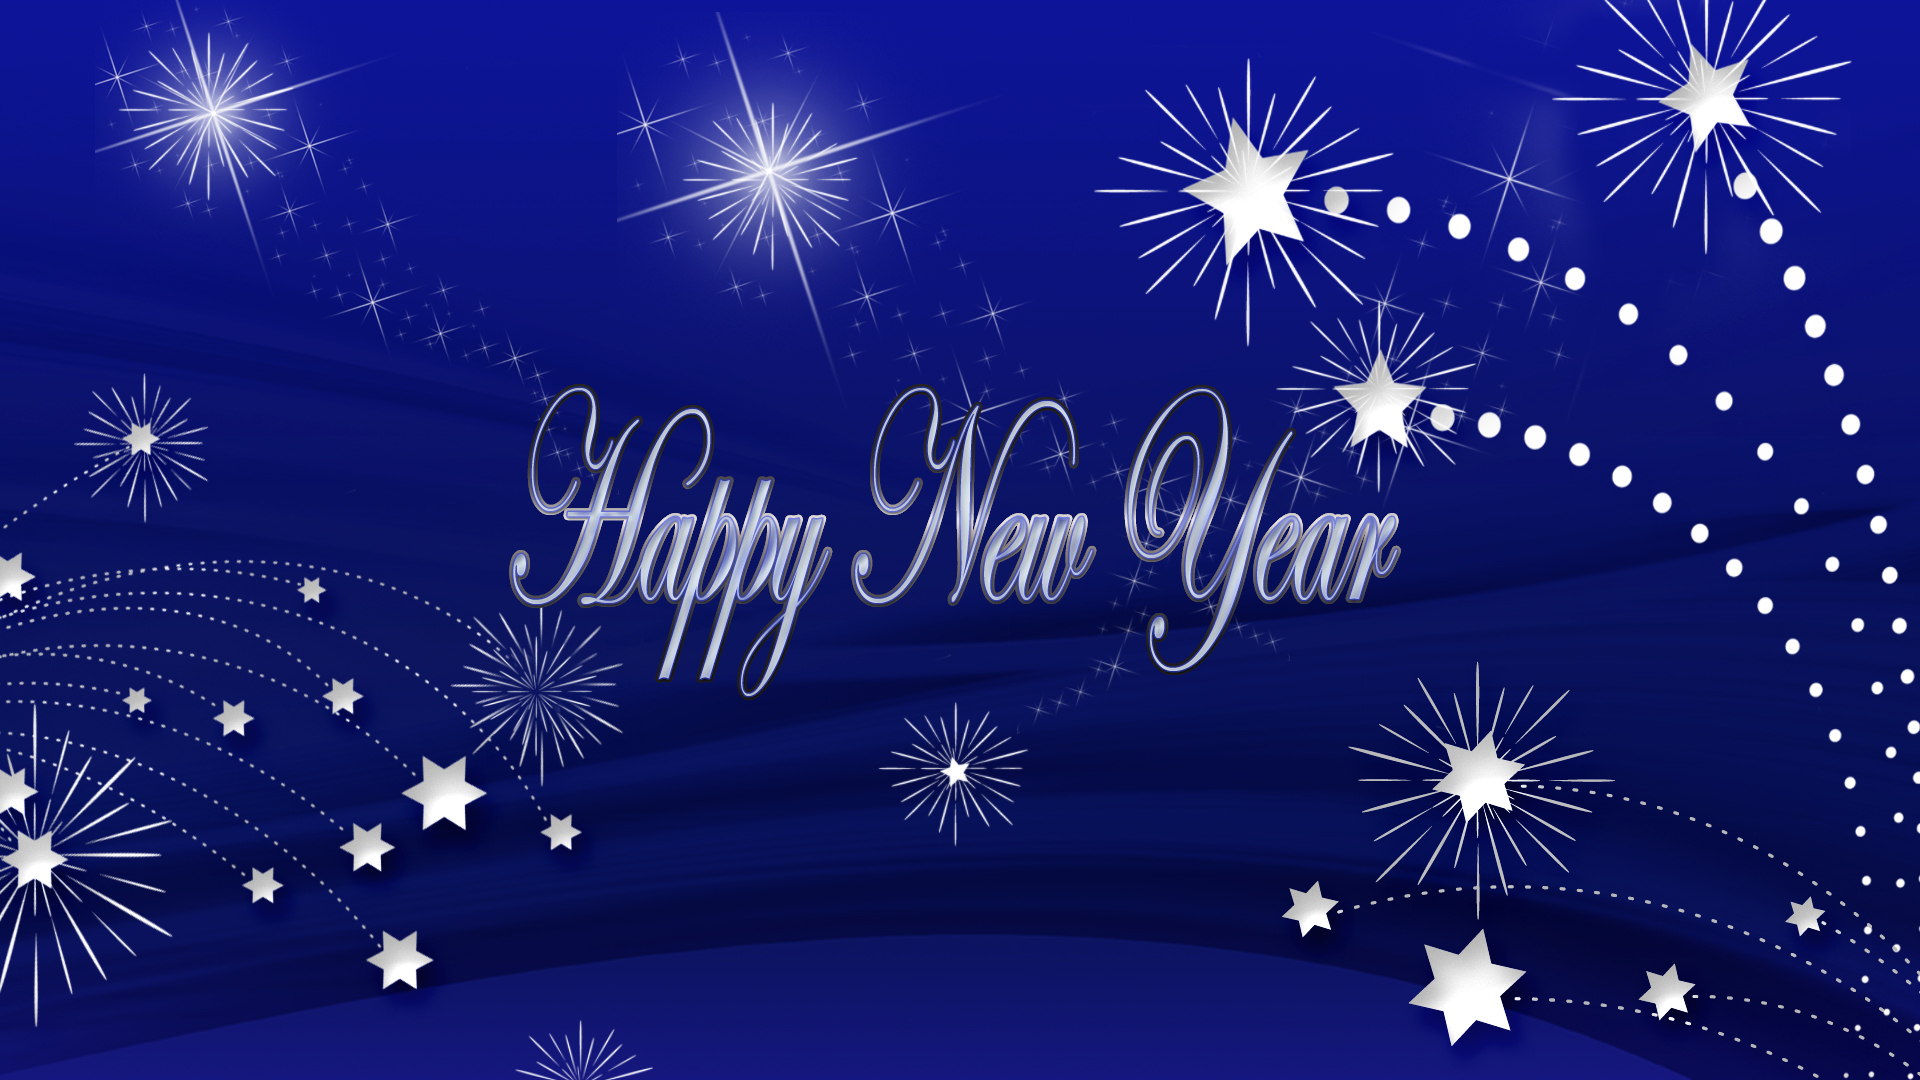 Happy New Year Wallpapers HD download 1920x1080